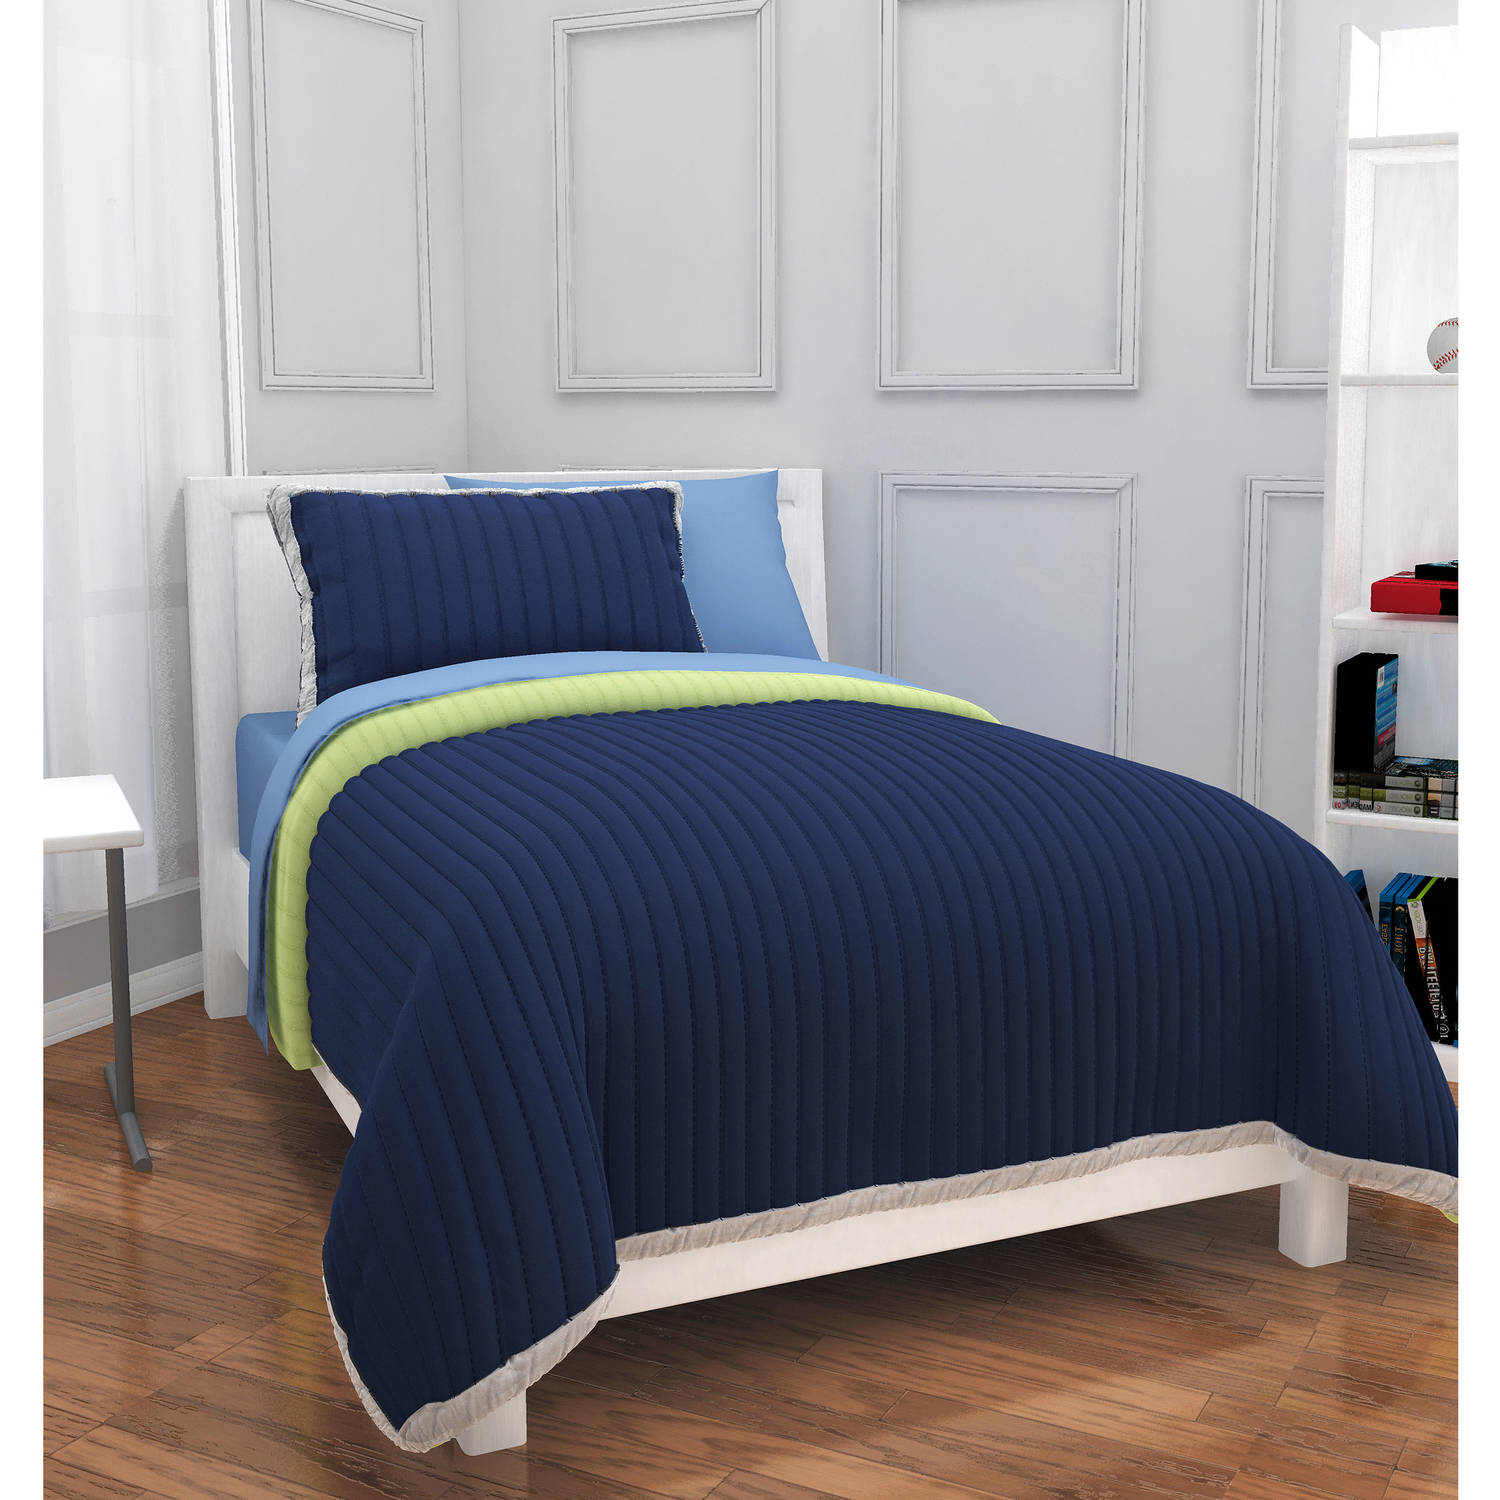 Mainstays Kids Quilted Solid Bed in a Bag Set